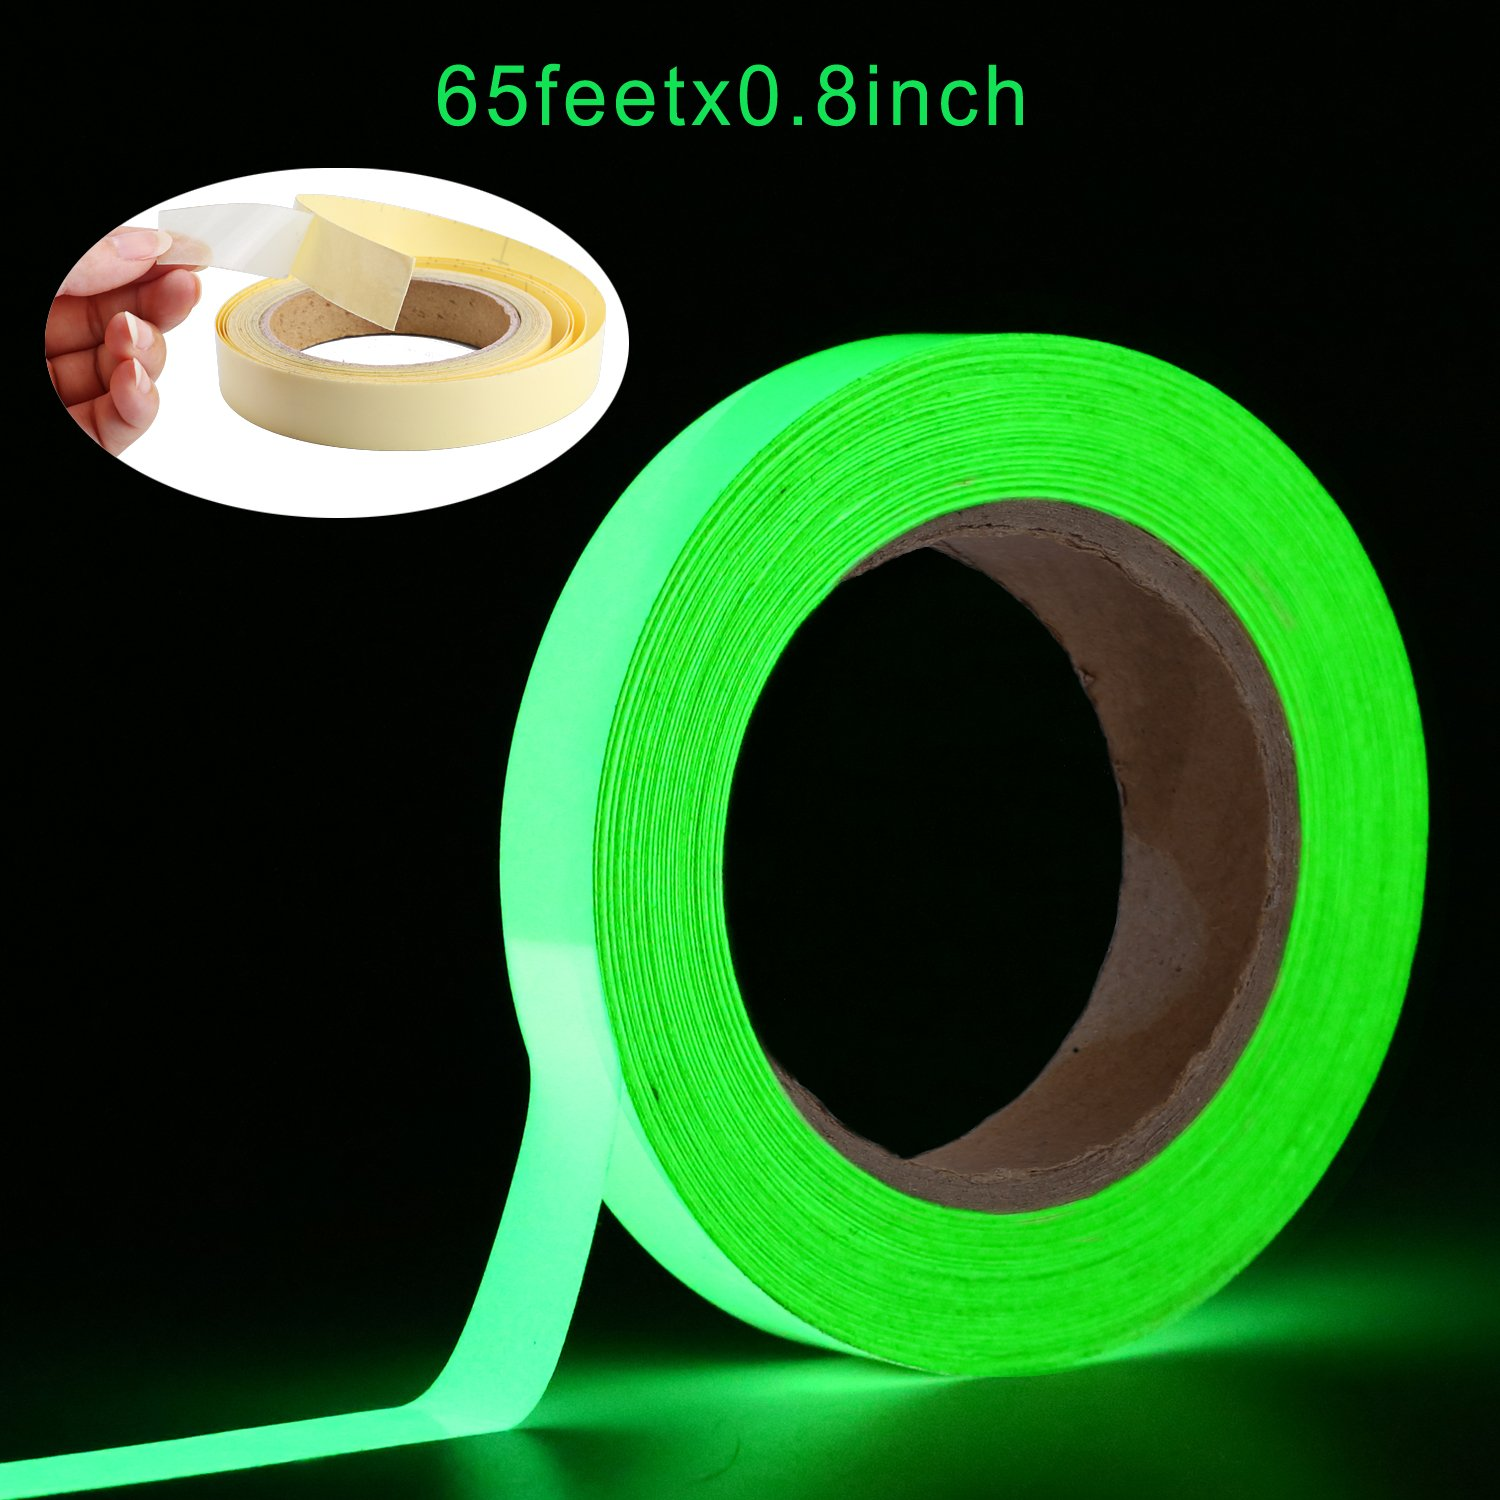 Glow in The Dark Tape Oumers 65 ft x 0.8 inch Green High Bright Luminous Tape Sticker Removeble Waterproof and Photoluminescent